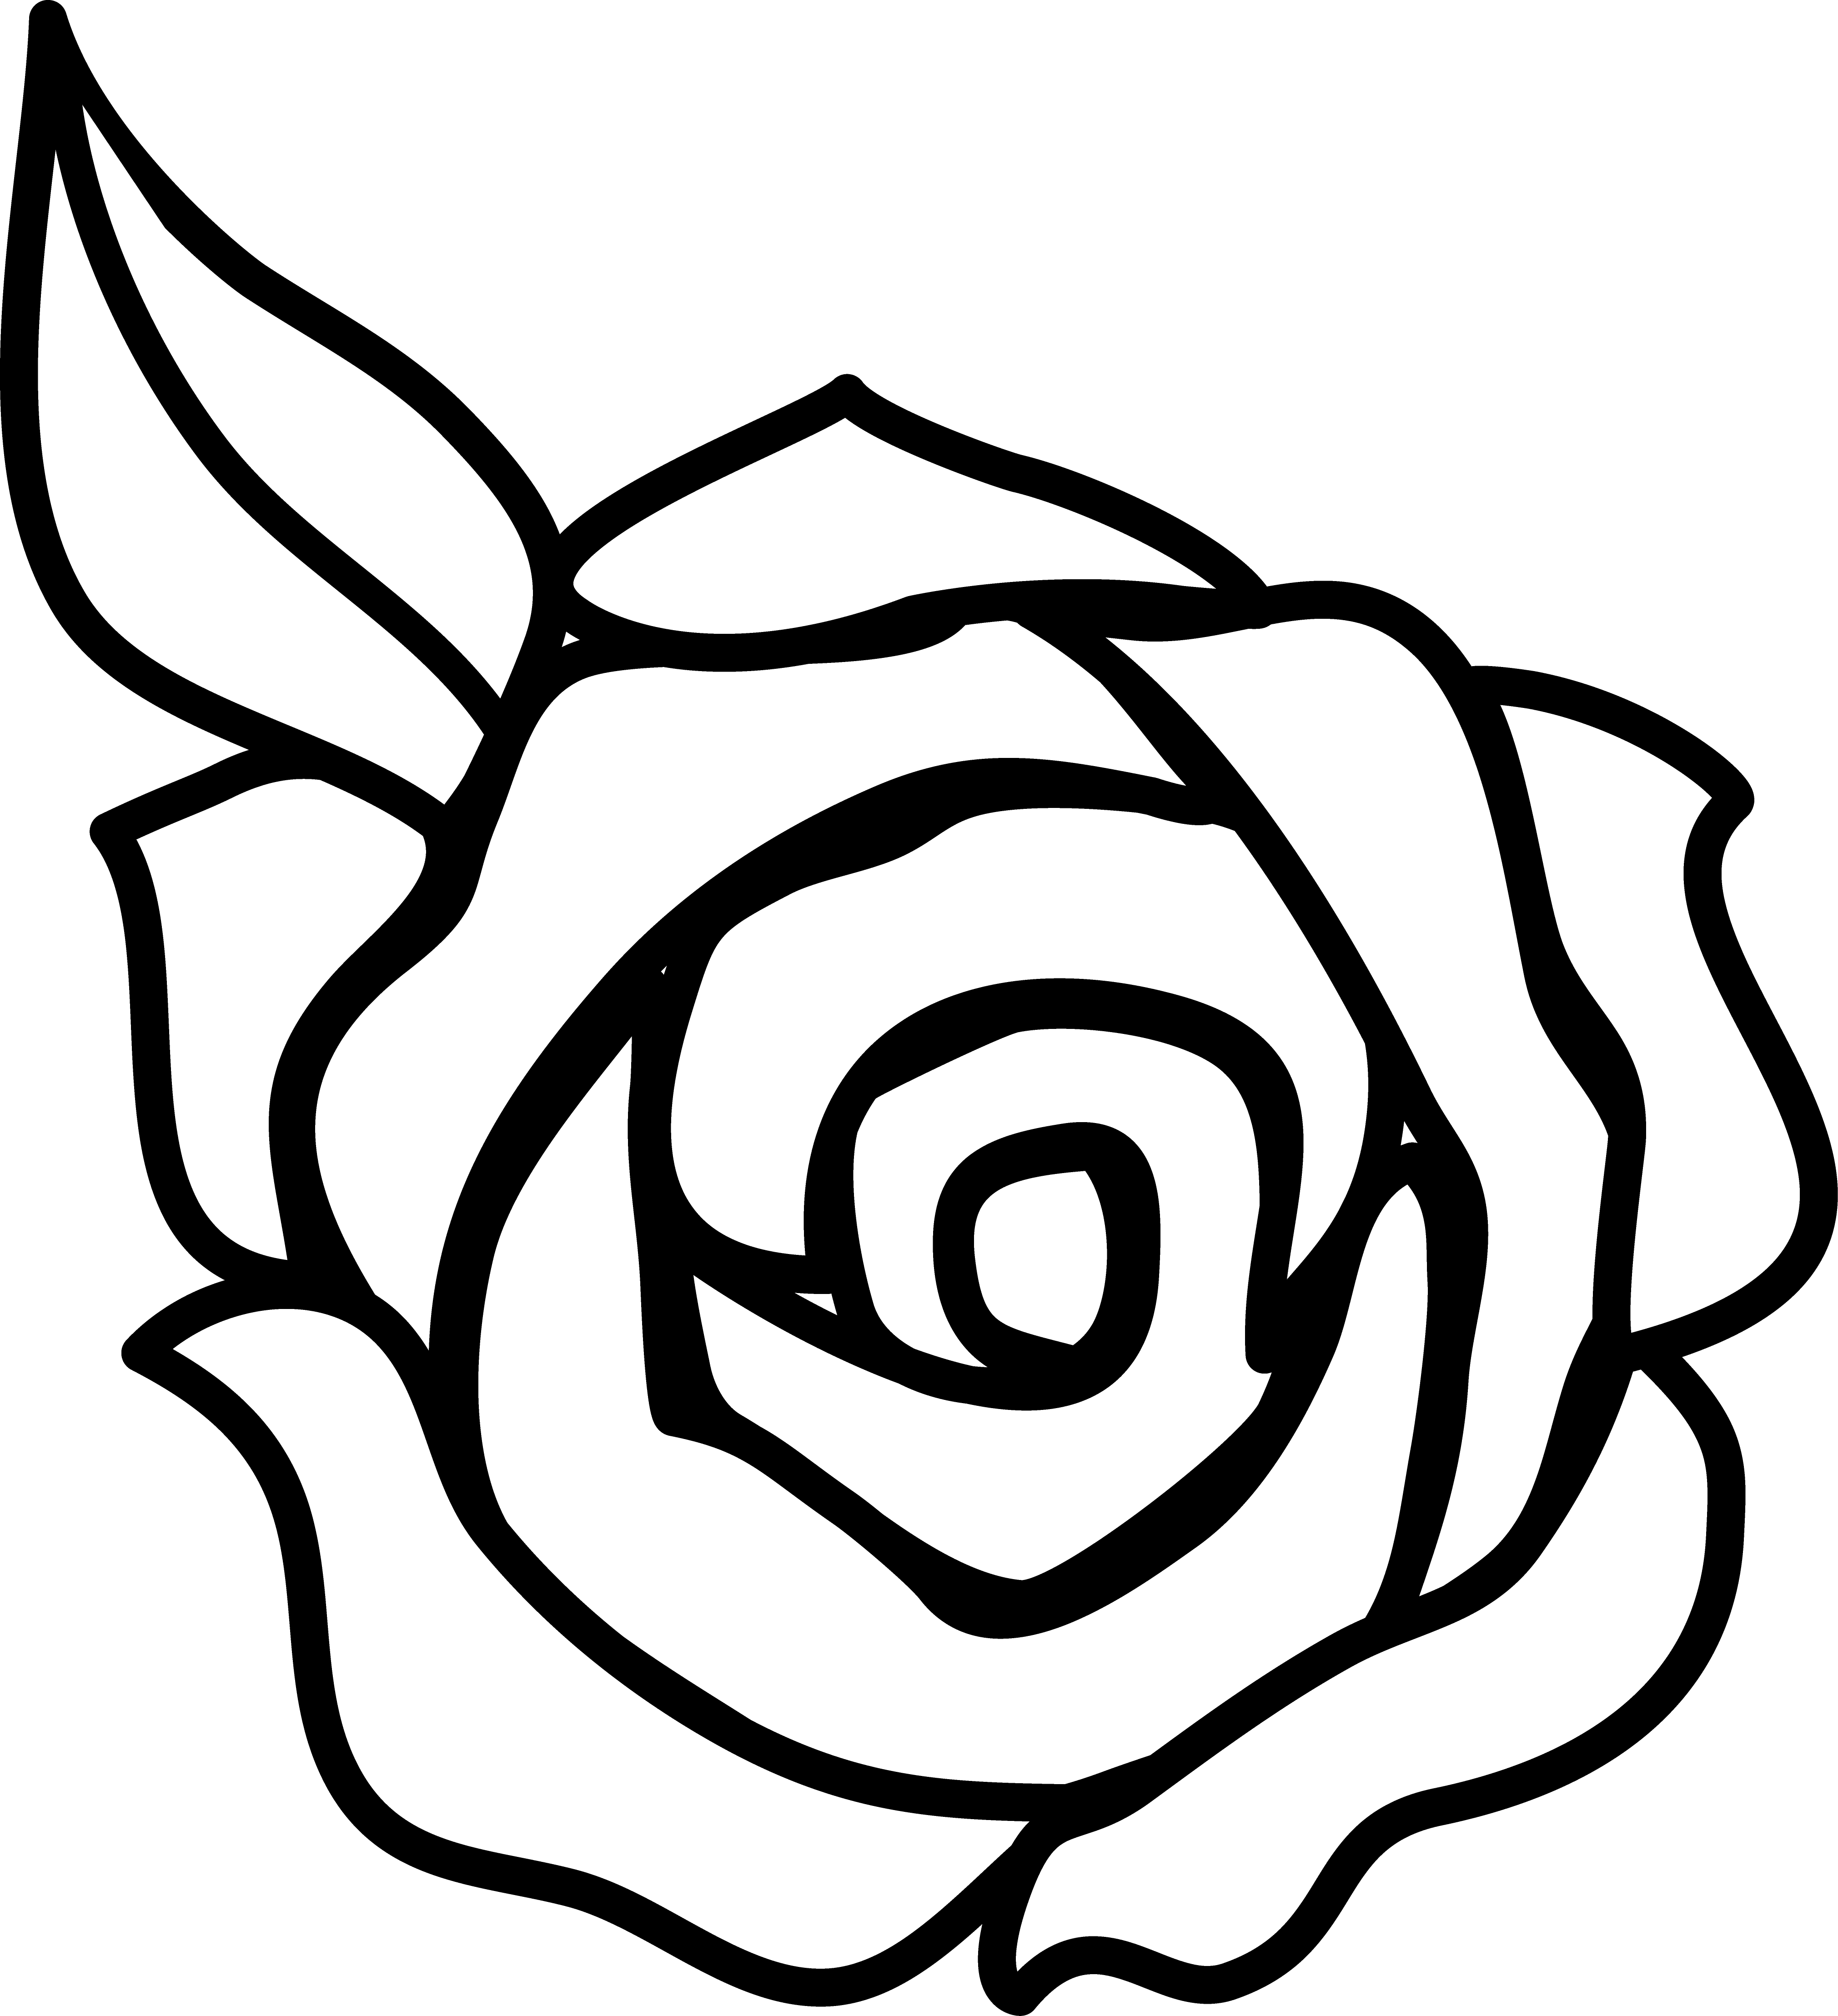 Black And White Rose Border Clip Art   Clipart Panda   Free Clipart